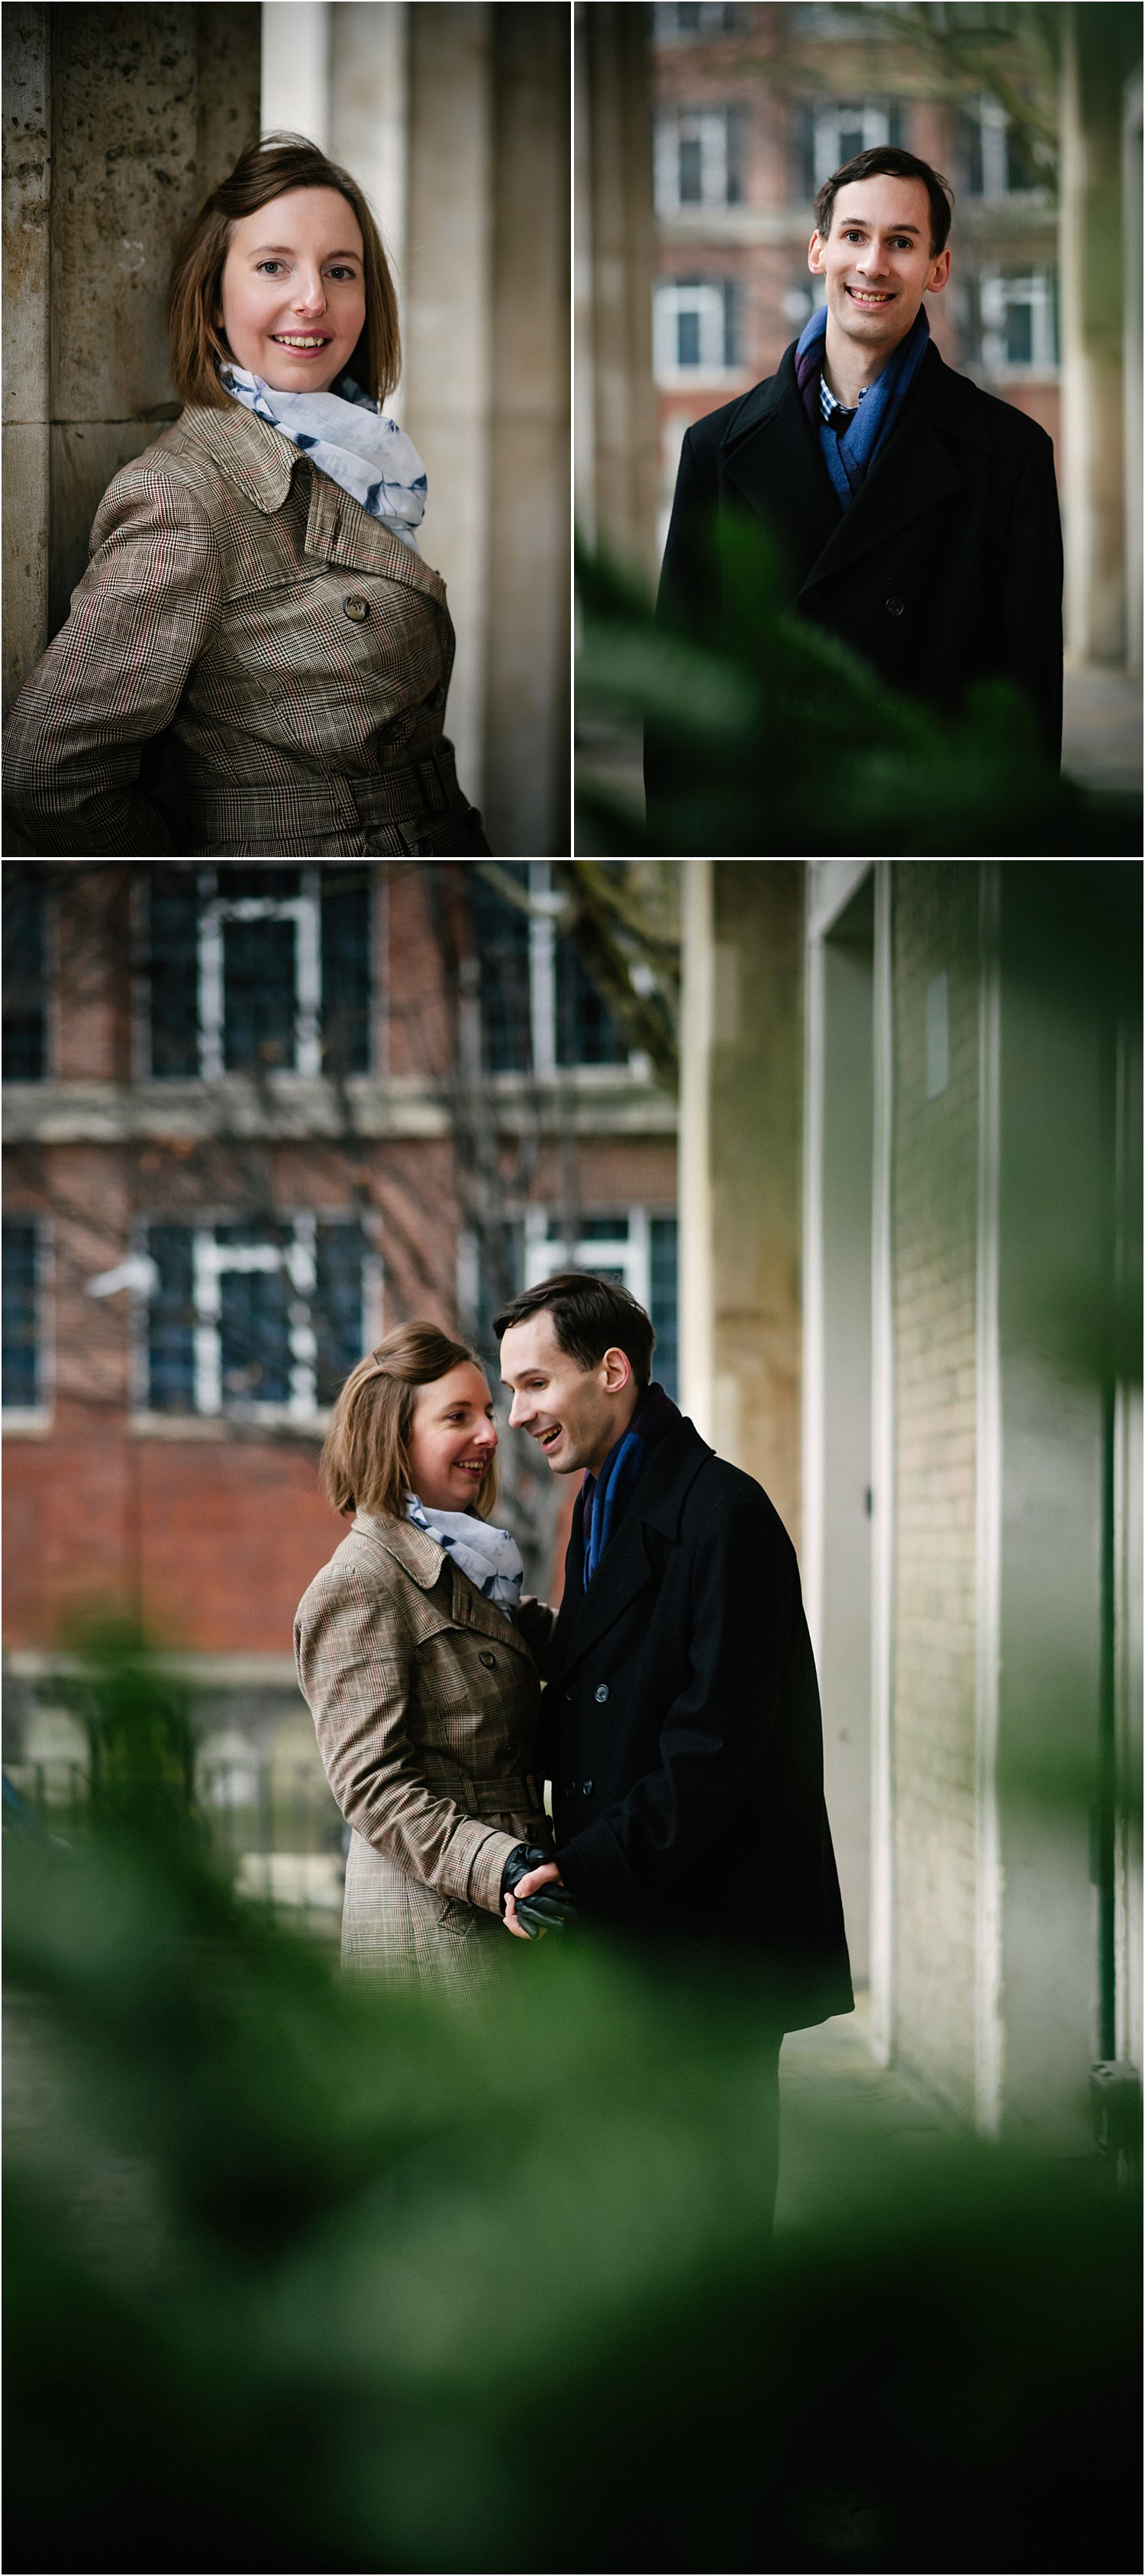 london-waterloo-engagement-photoshoot-winter-tom-helen-frances-lily-sawyer-photo